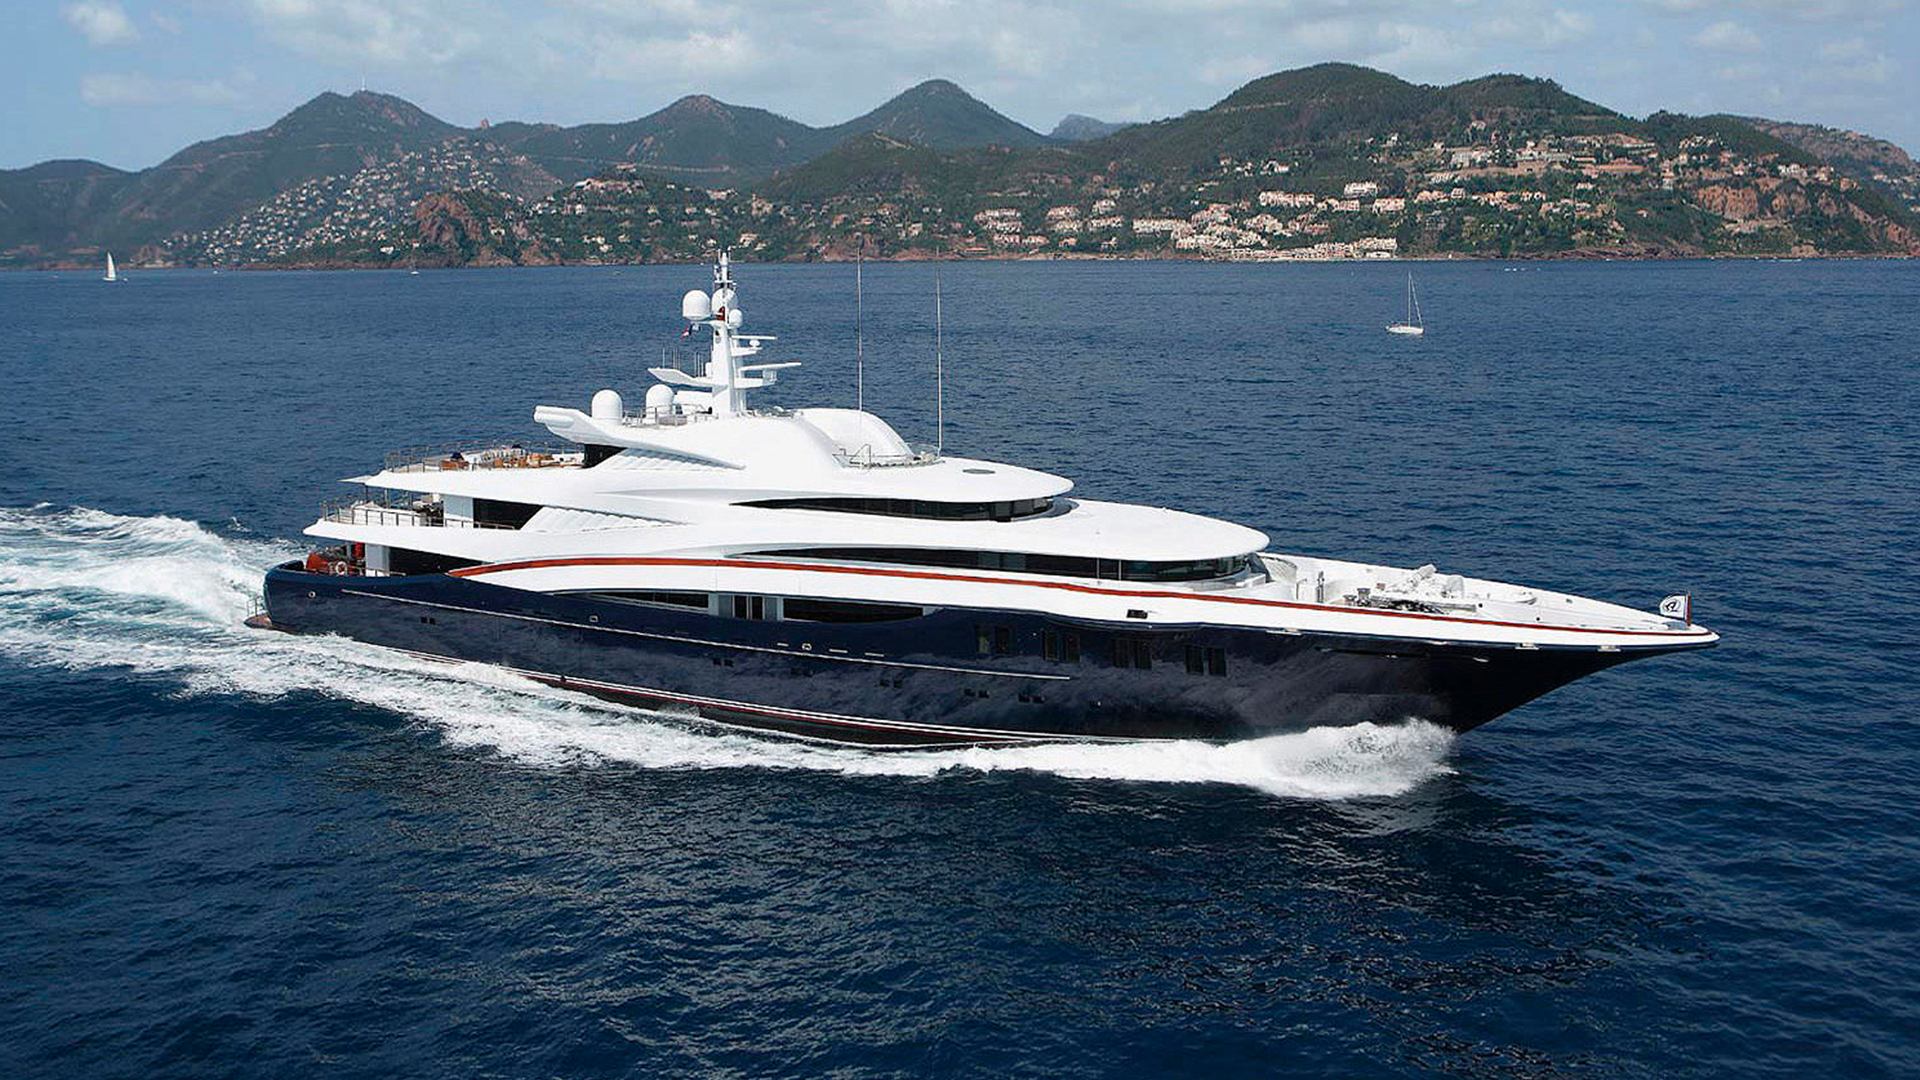 246-foot (74m) Oceanco yacht for charter WHEELS